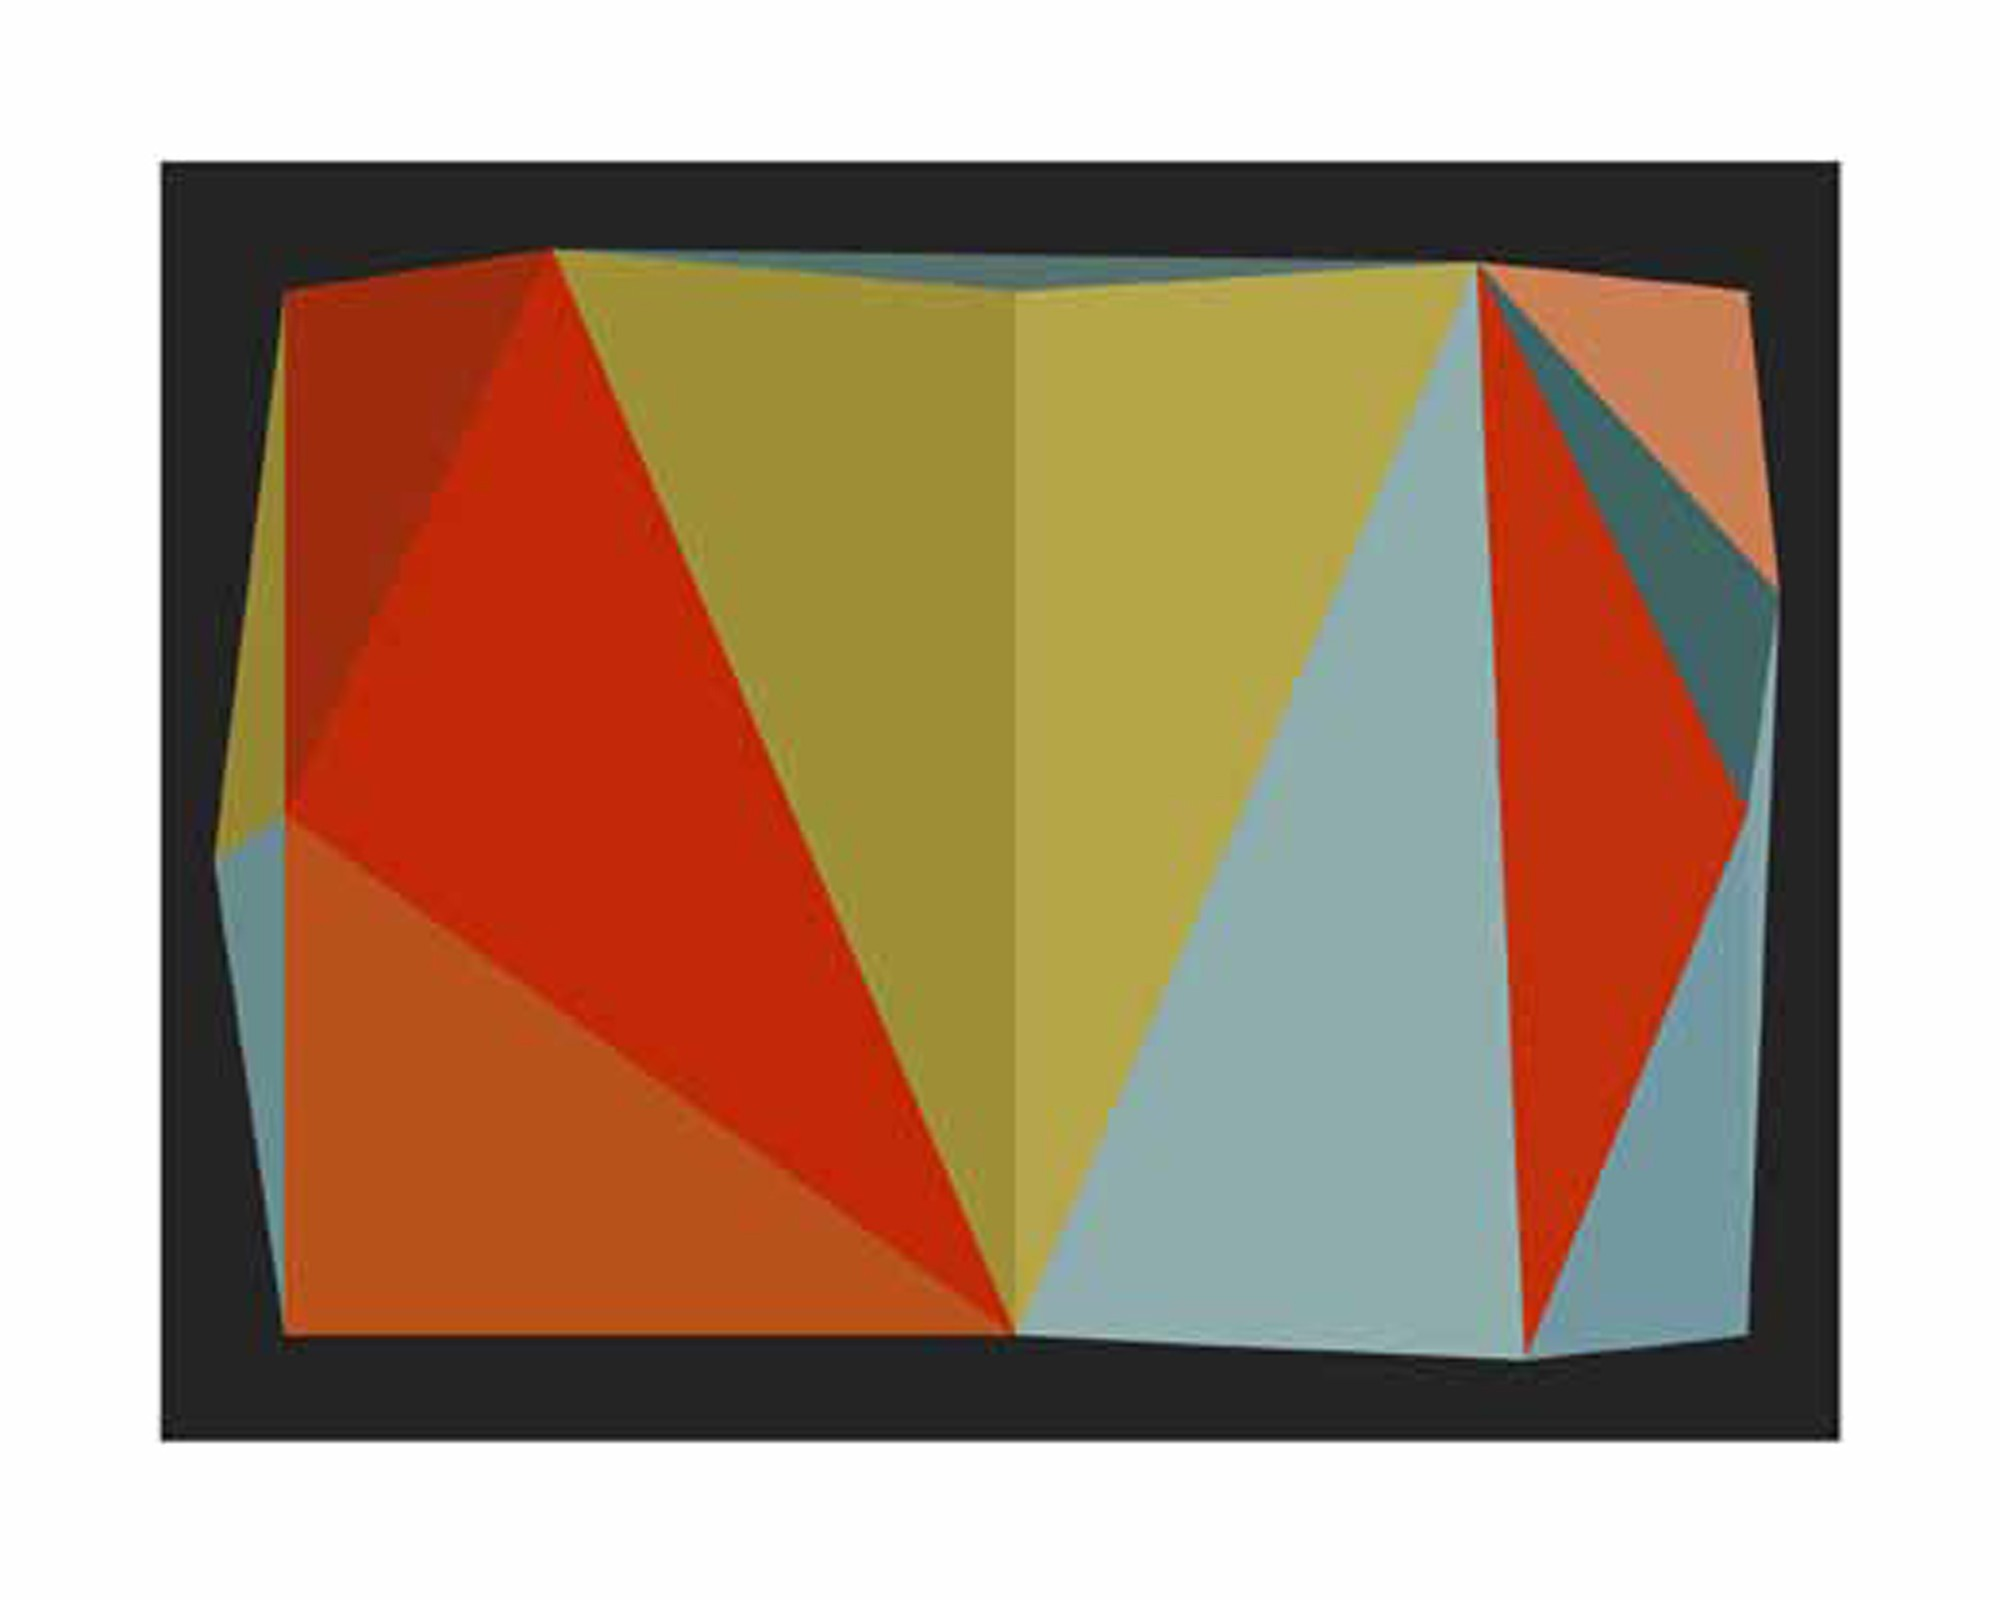 Triangulations n°5, 2013